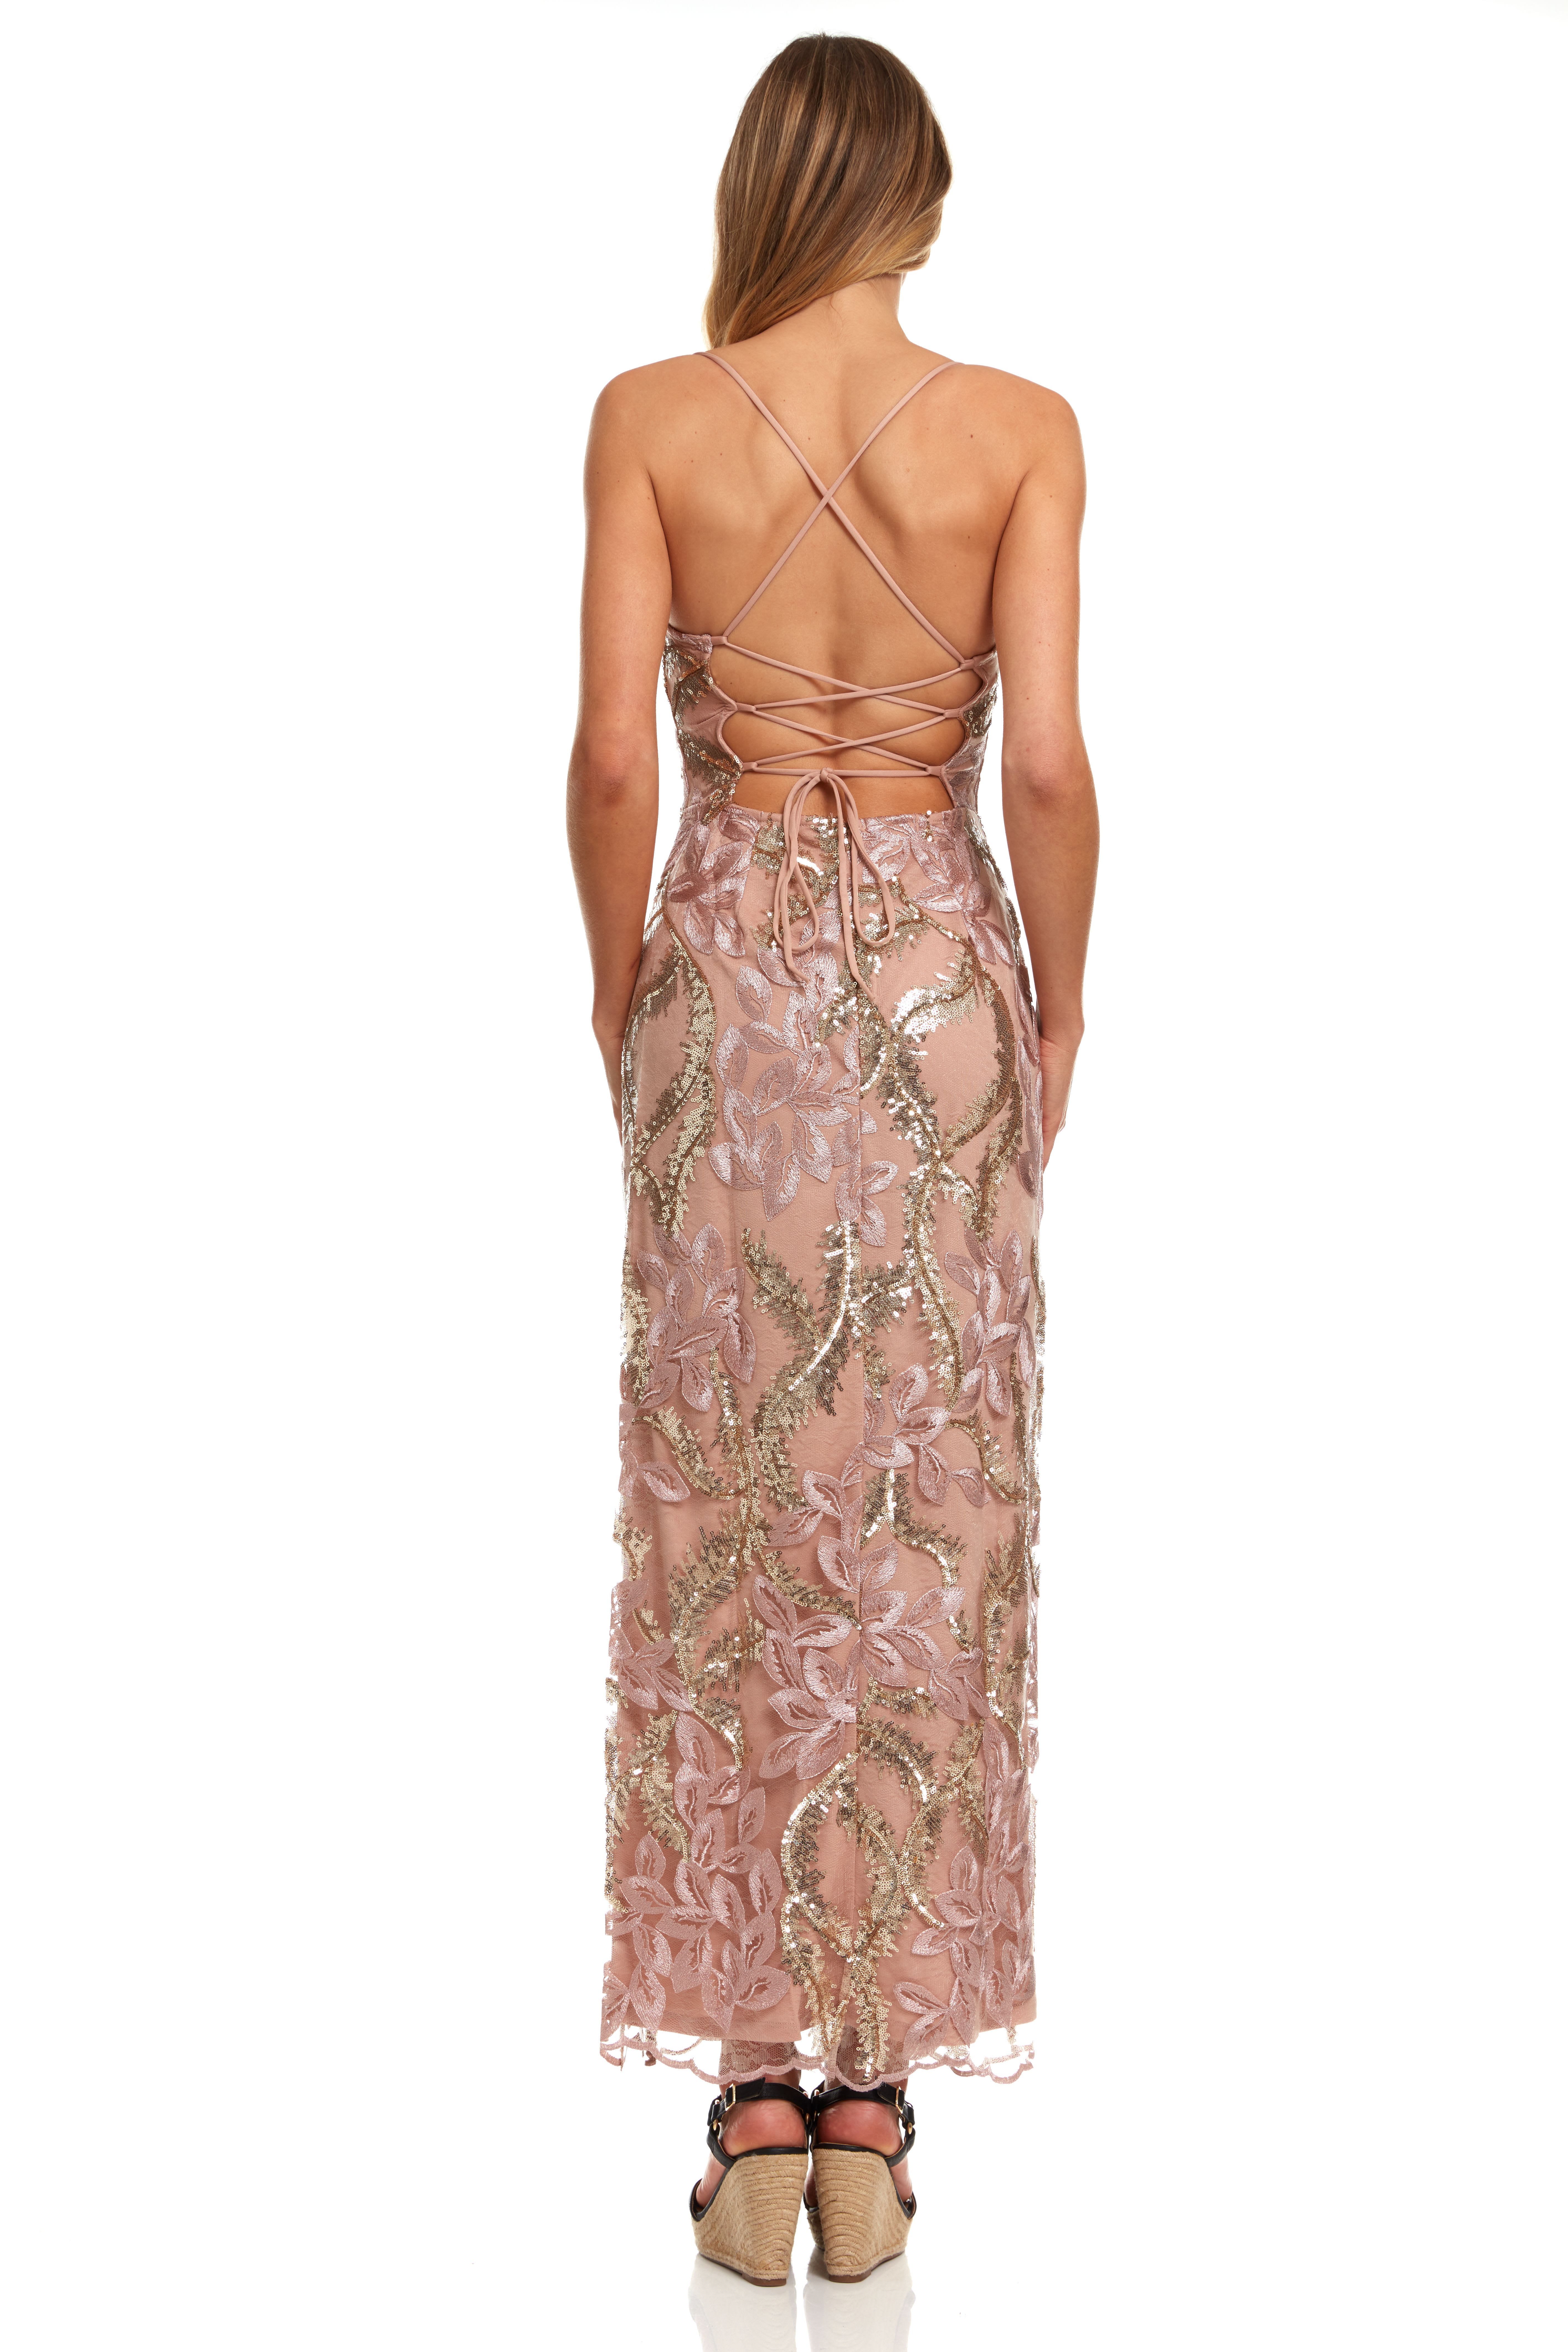 Embroidered Floral Maxi dress with Slit - Multi - Back